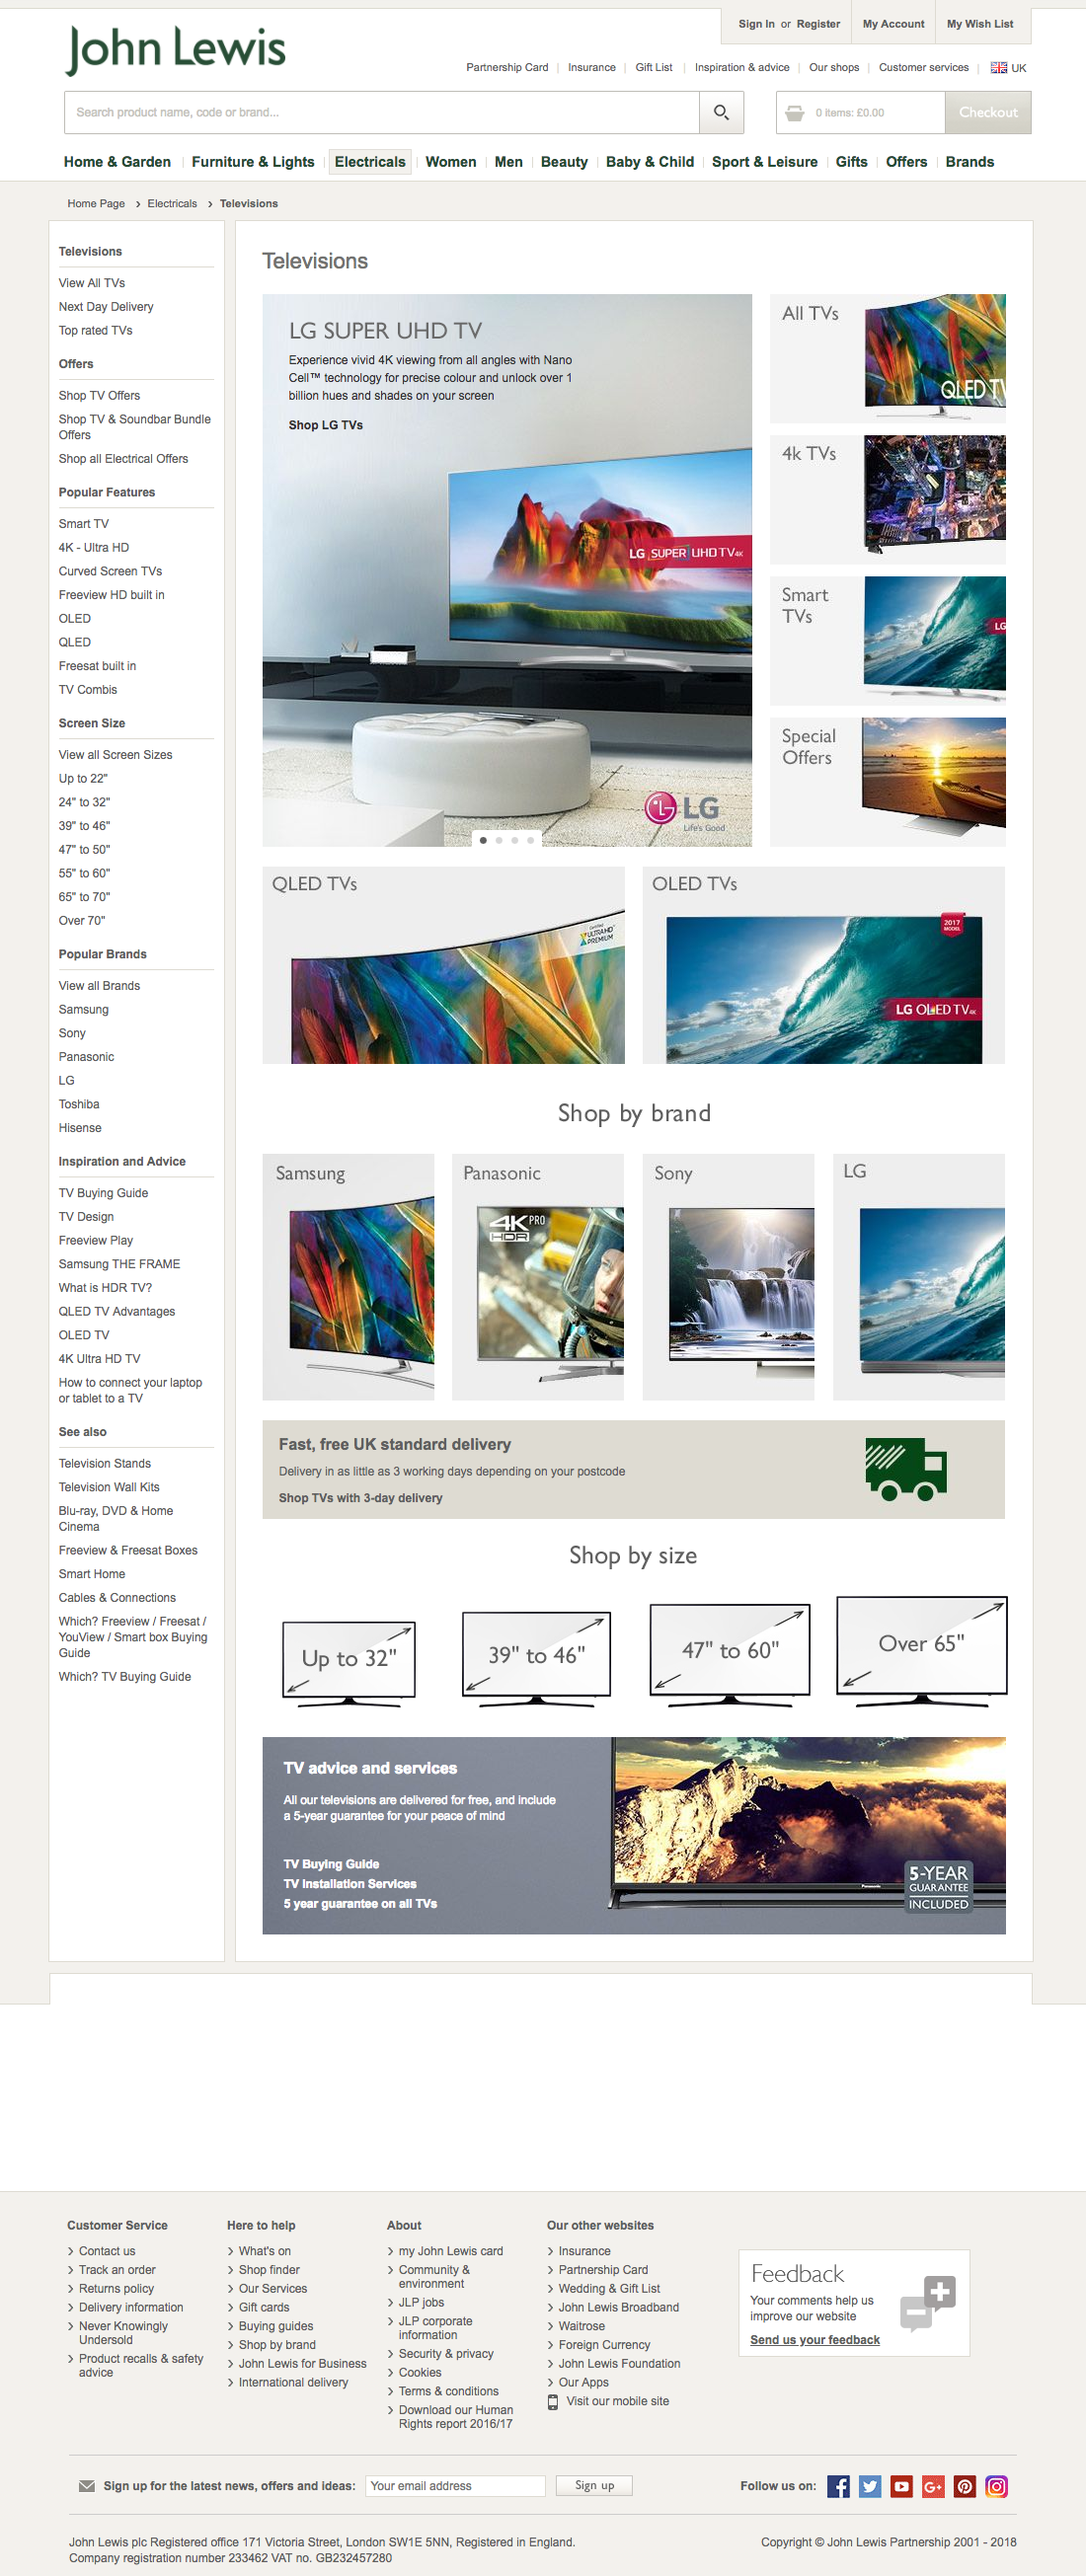 john lewis 203 intermediary category page design examples